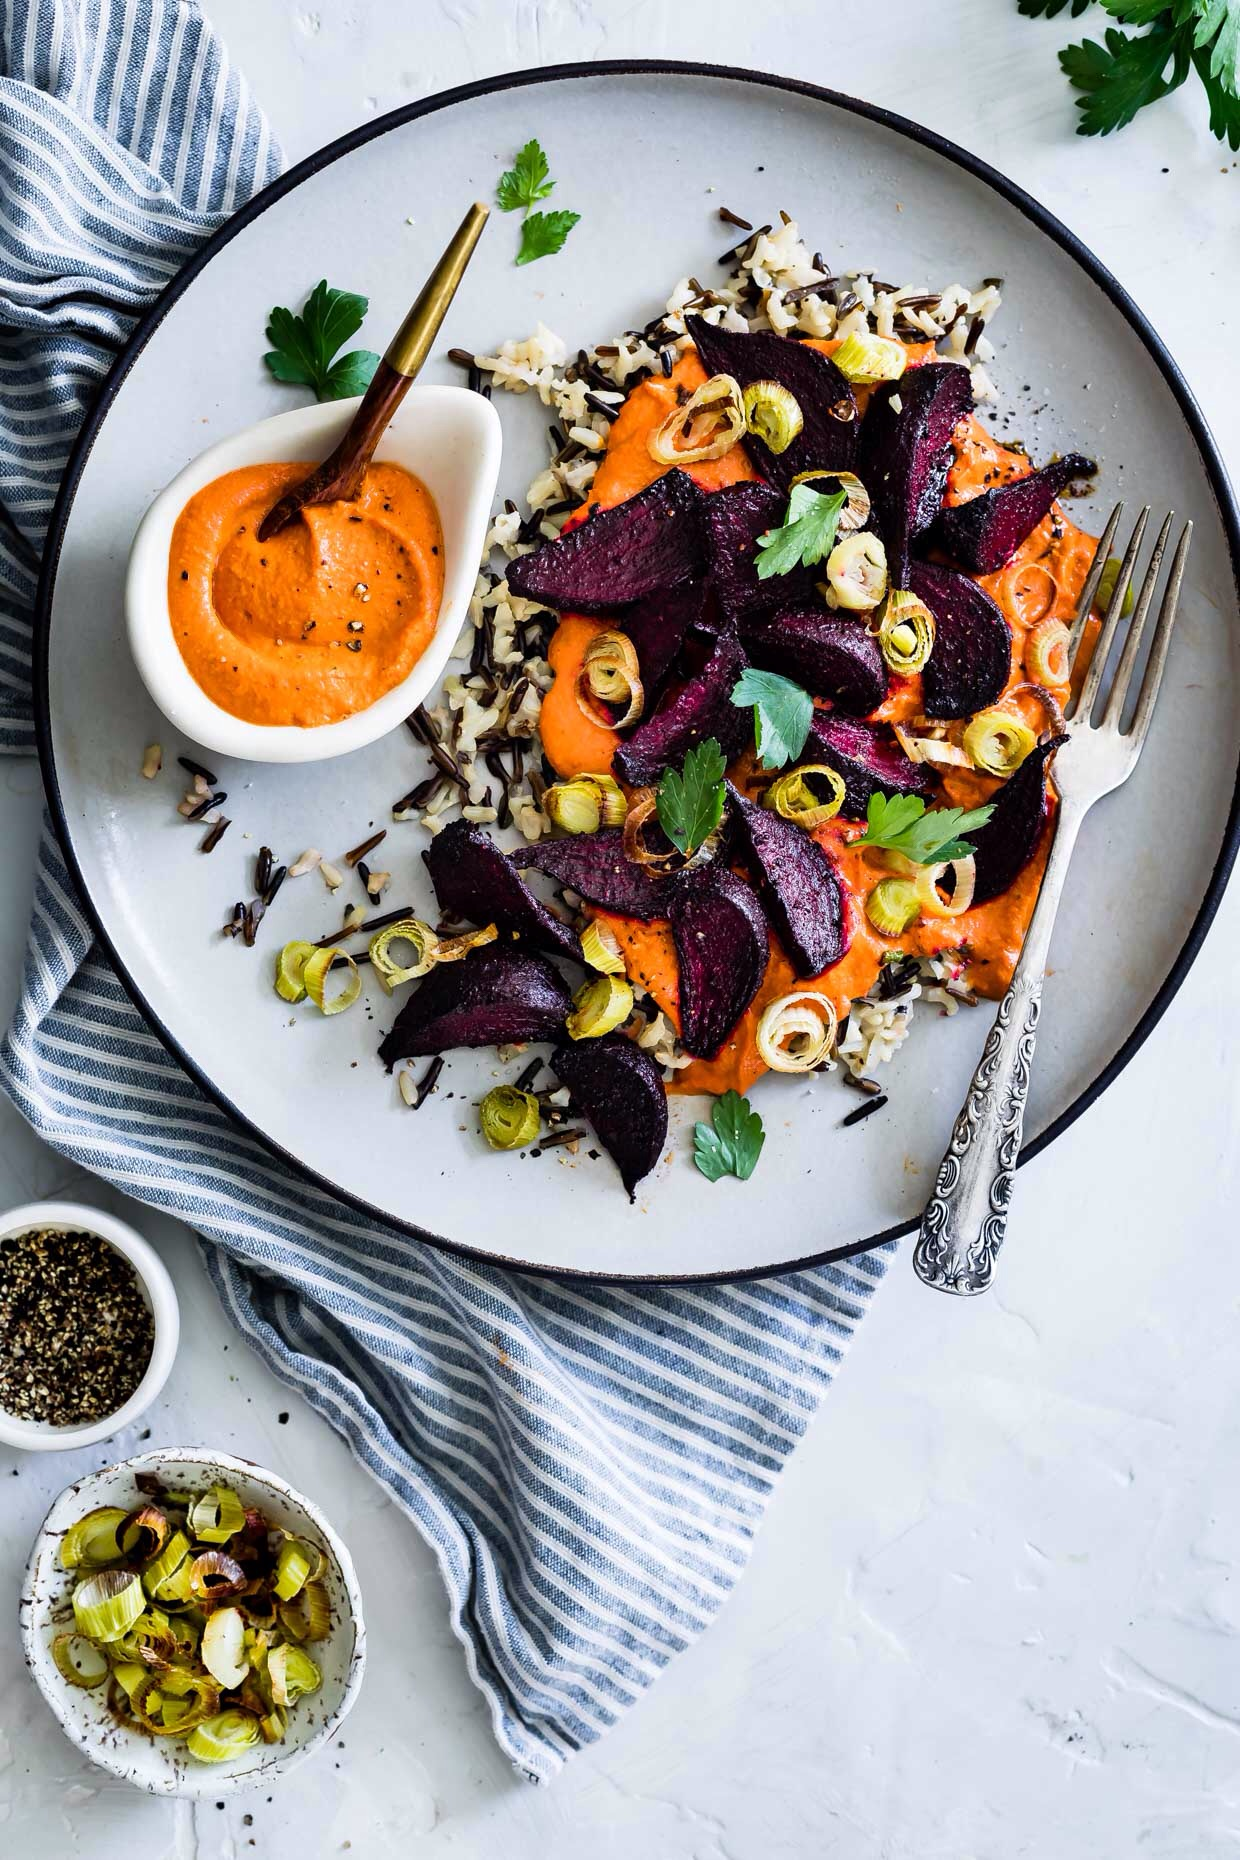 Roasted beets and wild rice